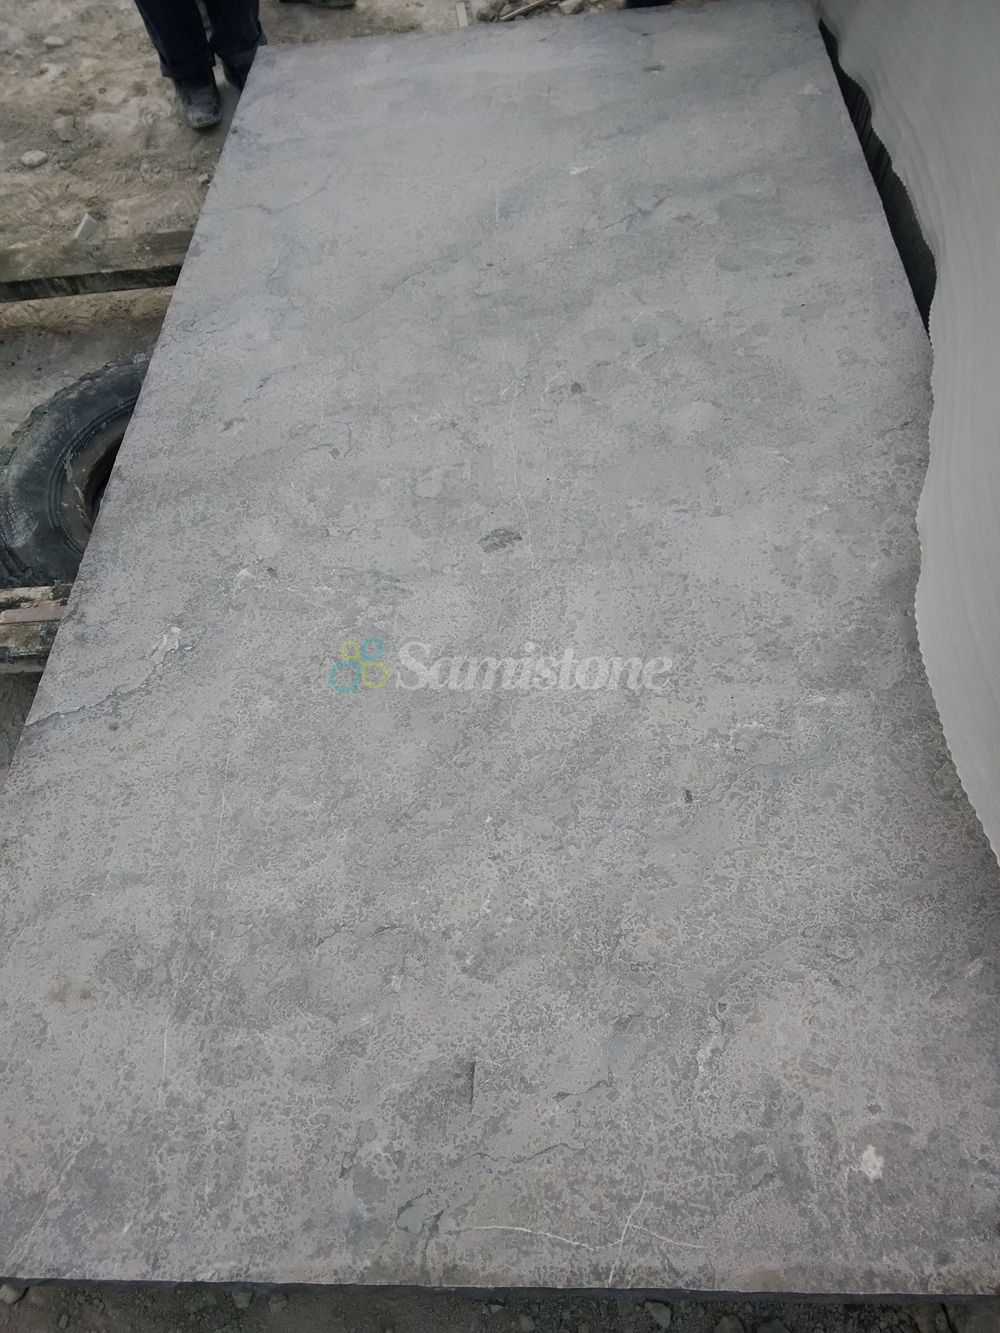 Samistone Bluestone Flamed Amp Brushed Slabs Countertops